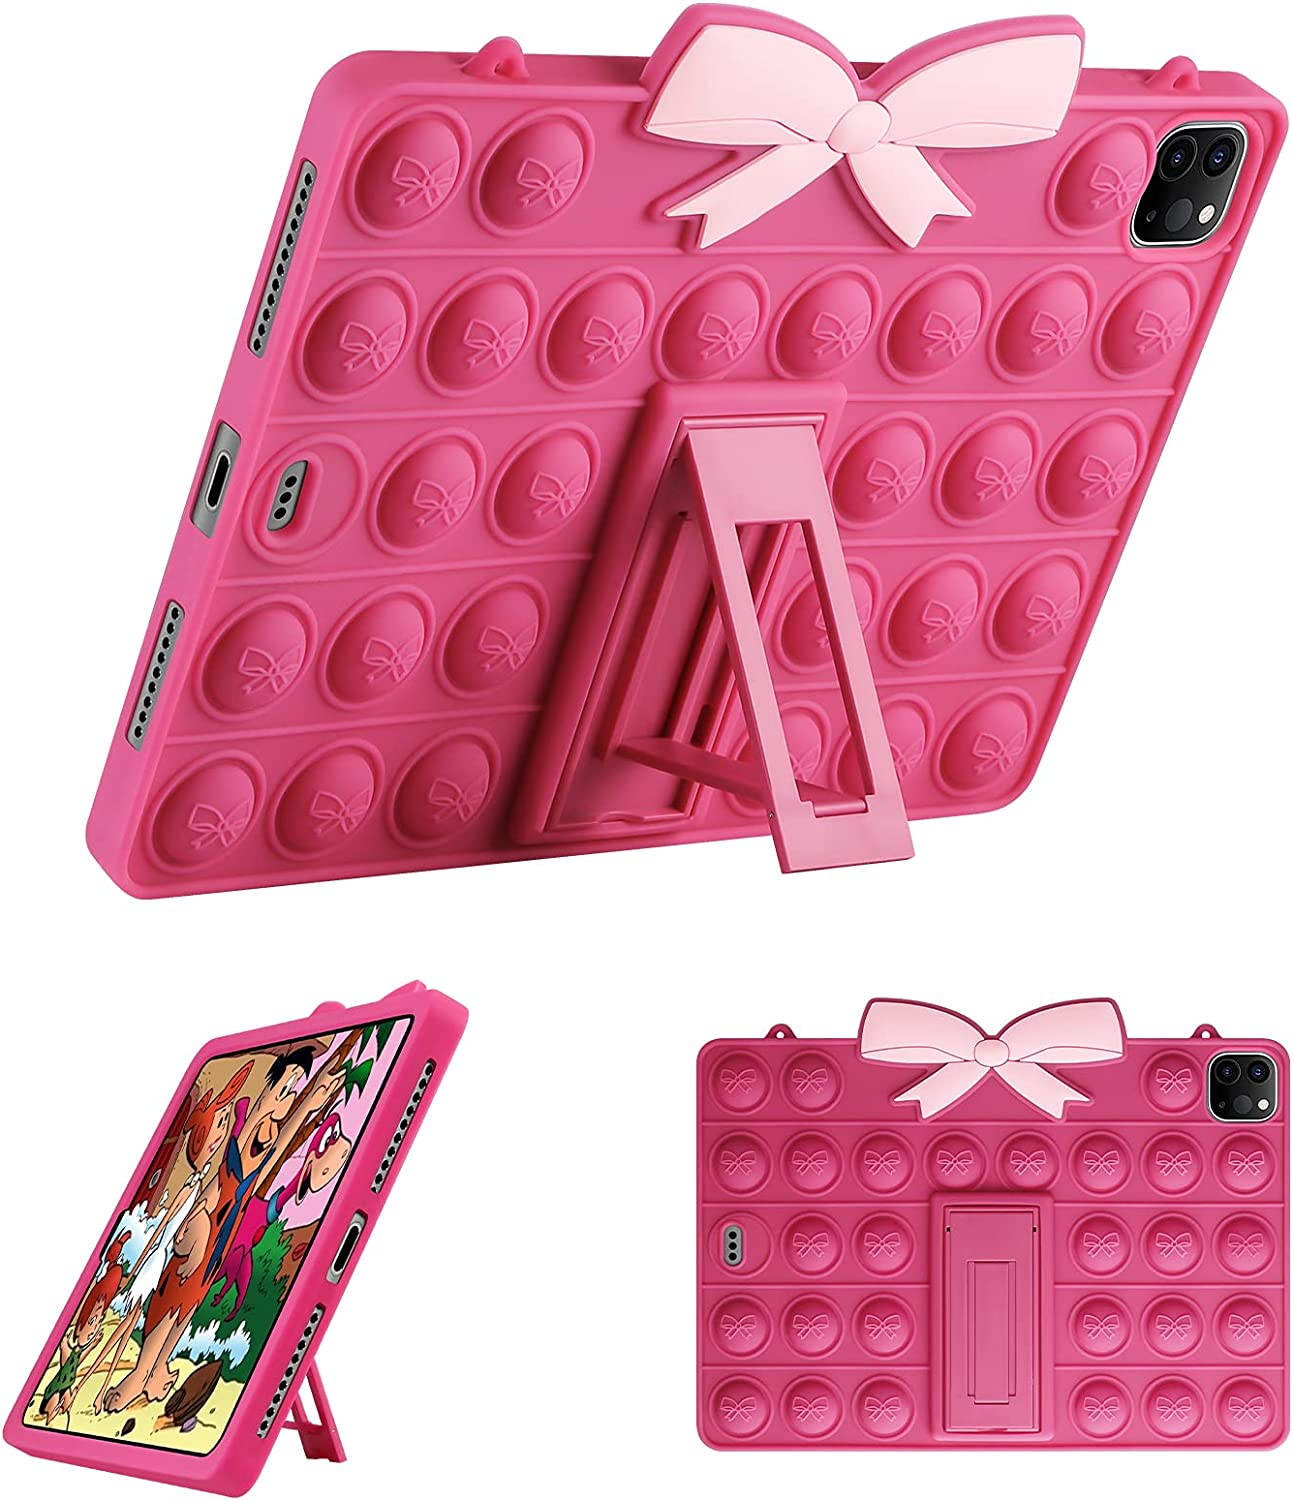 WESADN Case for iPad Pro 11 Case 2021/2020/2018 with Stand for Girls Silicone Fidget Cute Bubble Case Holder Tablet Cover for iPad Pro 11 inch Cover 3rd/2nd/1st Generation 2021/2020/2018 Rose Red